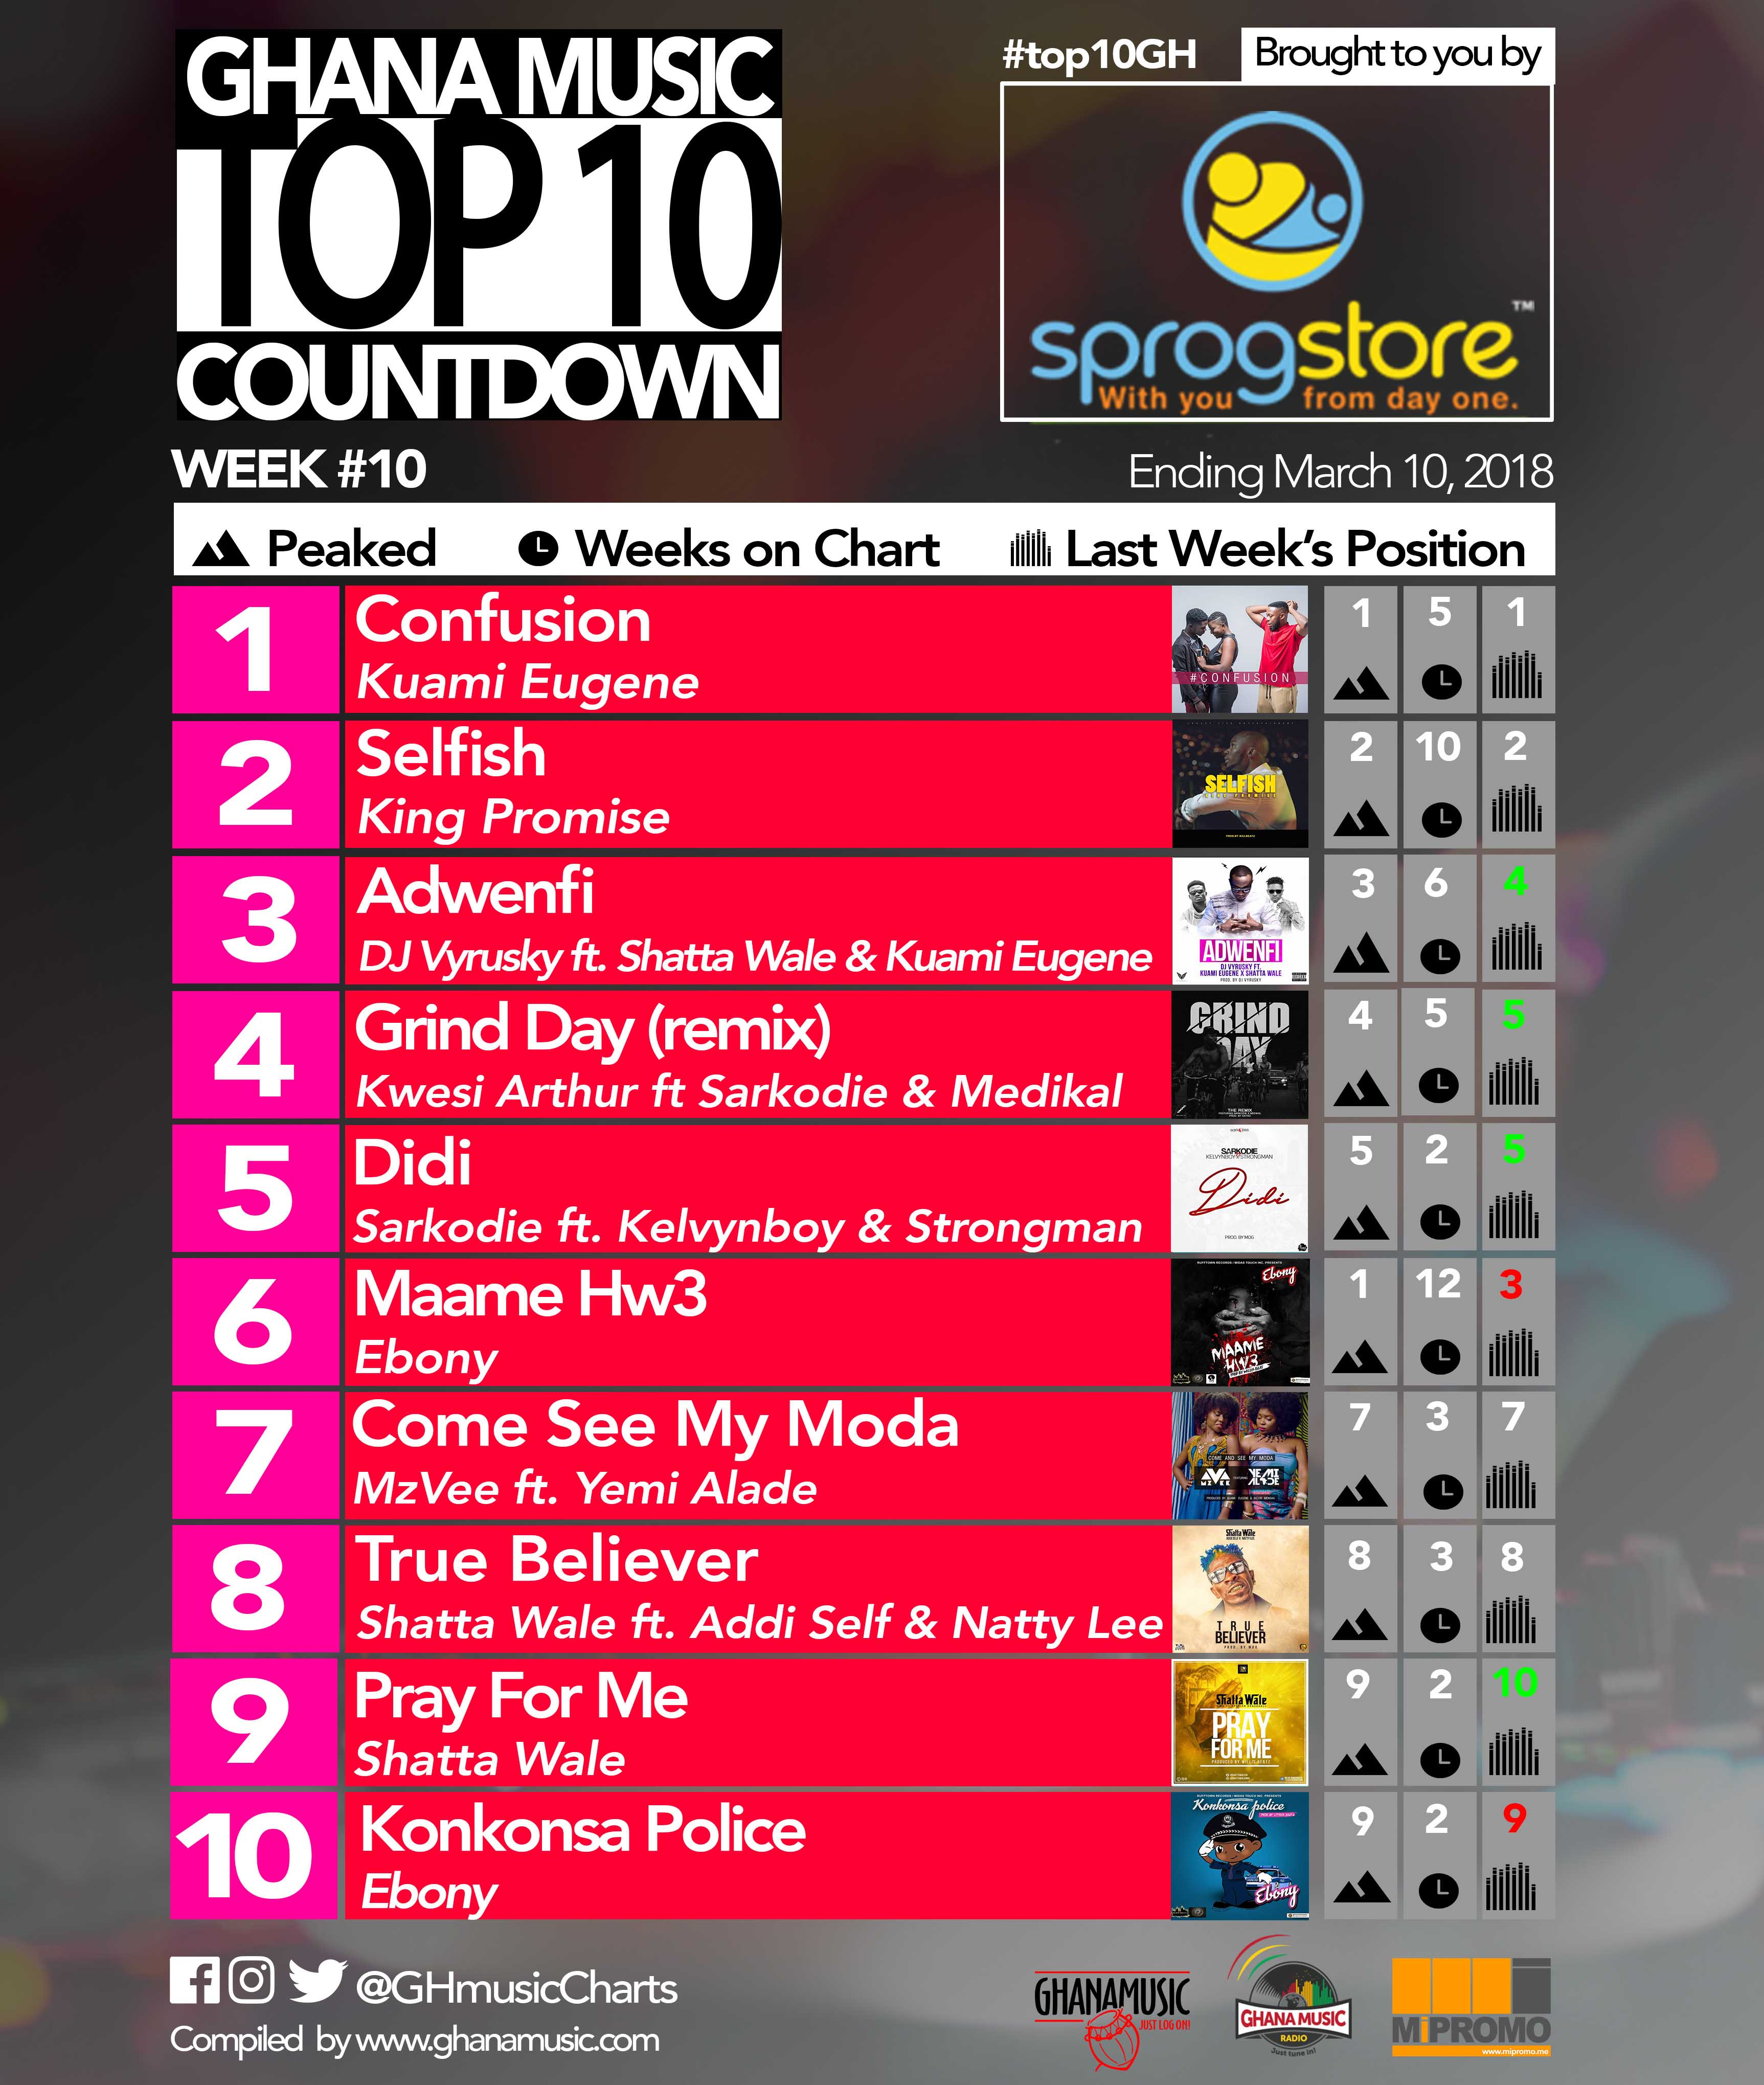 Week #10: Ghana Music Top 10 Countdown